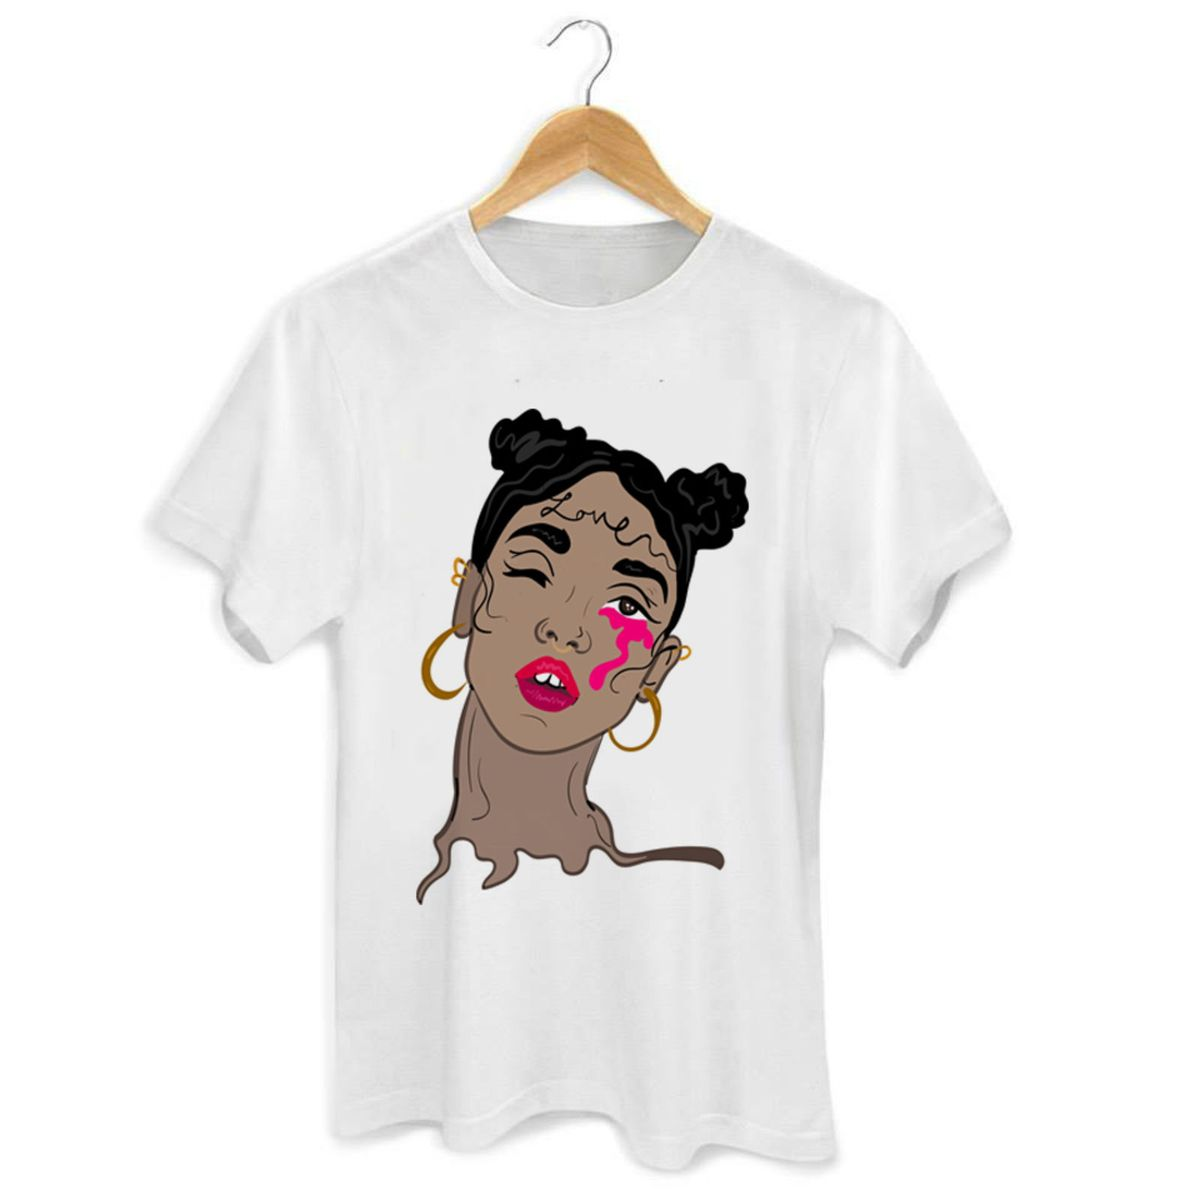 fka twigs - camisetas affection store